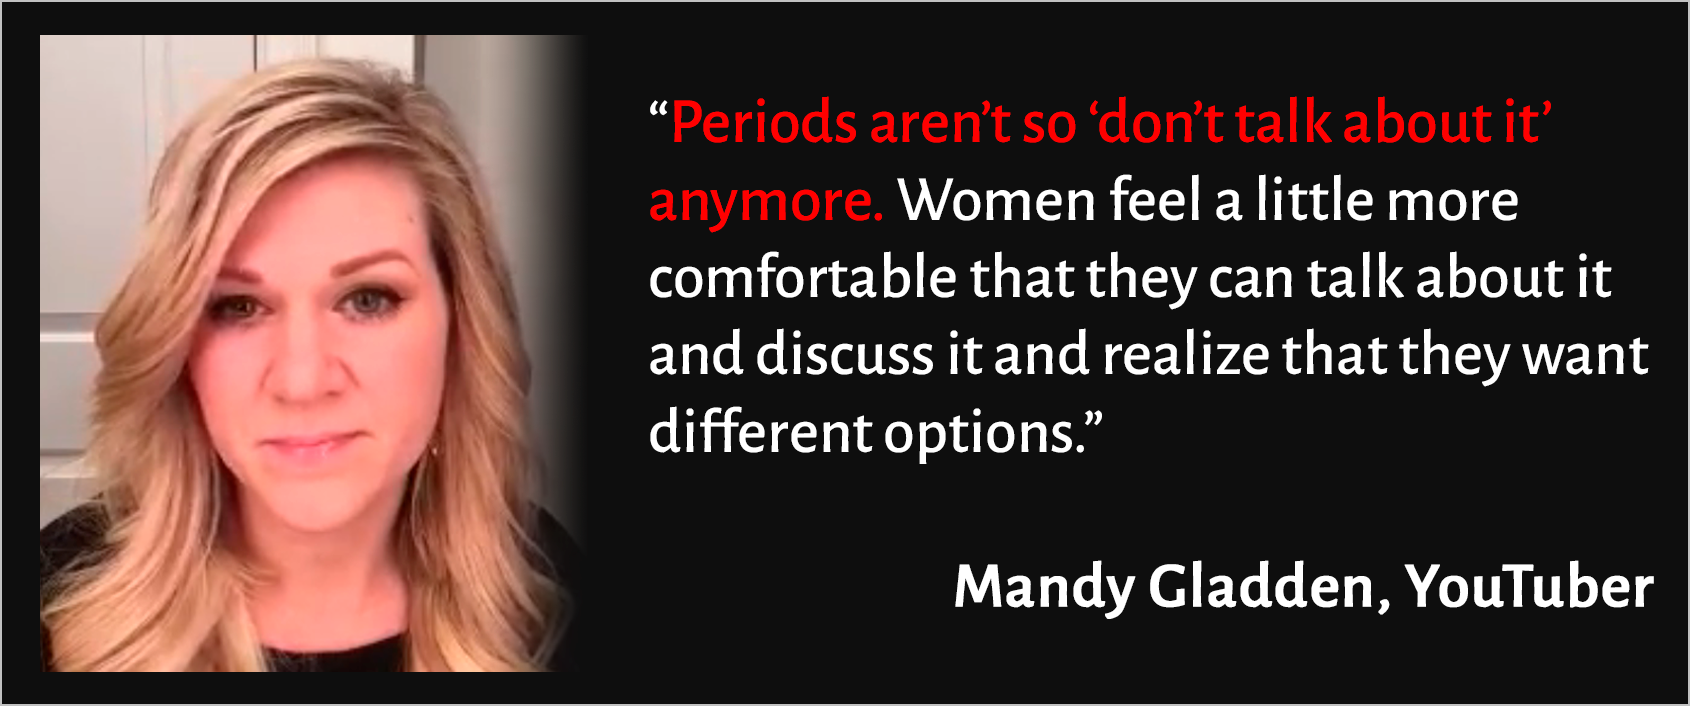 "Mandy Gladden is shown. Next to her face, a quote: ""Period aren't so 'don't talk about it' anymore. Women feel a little more comfortable that they can talk about it and discuss it and realize that they want different options."""